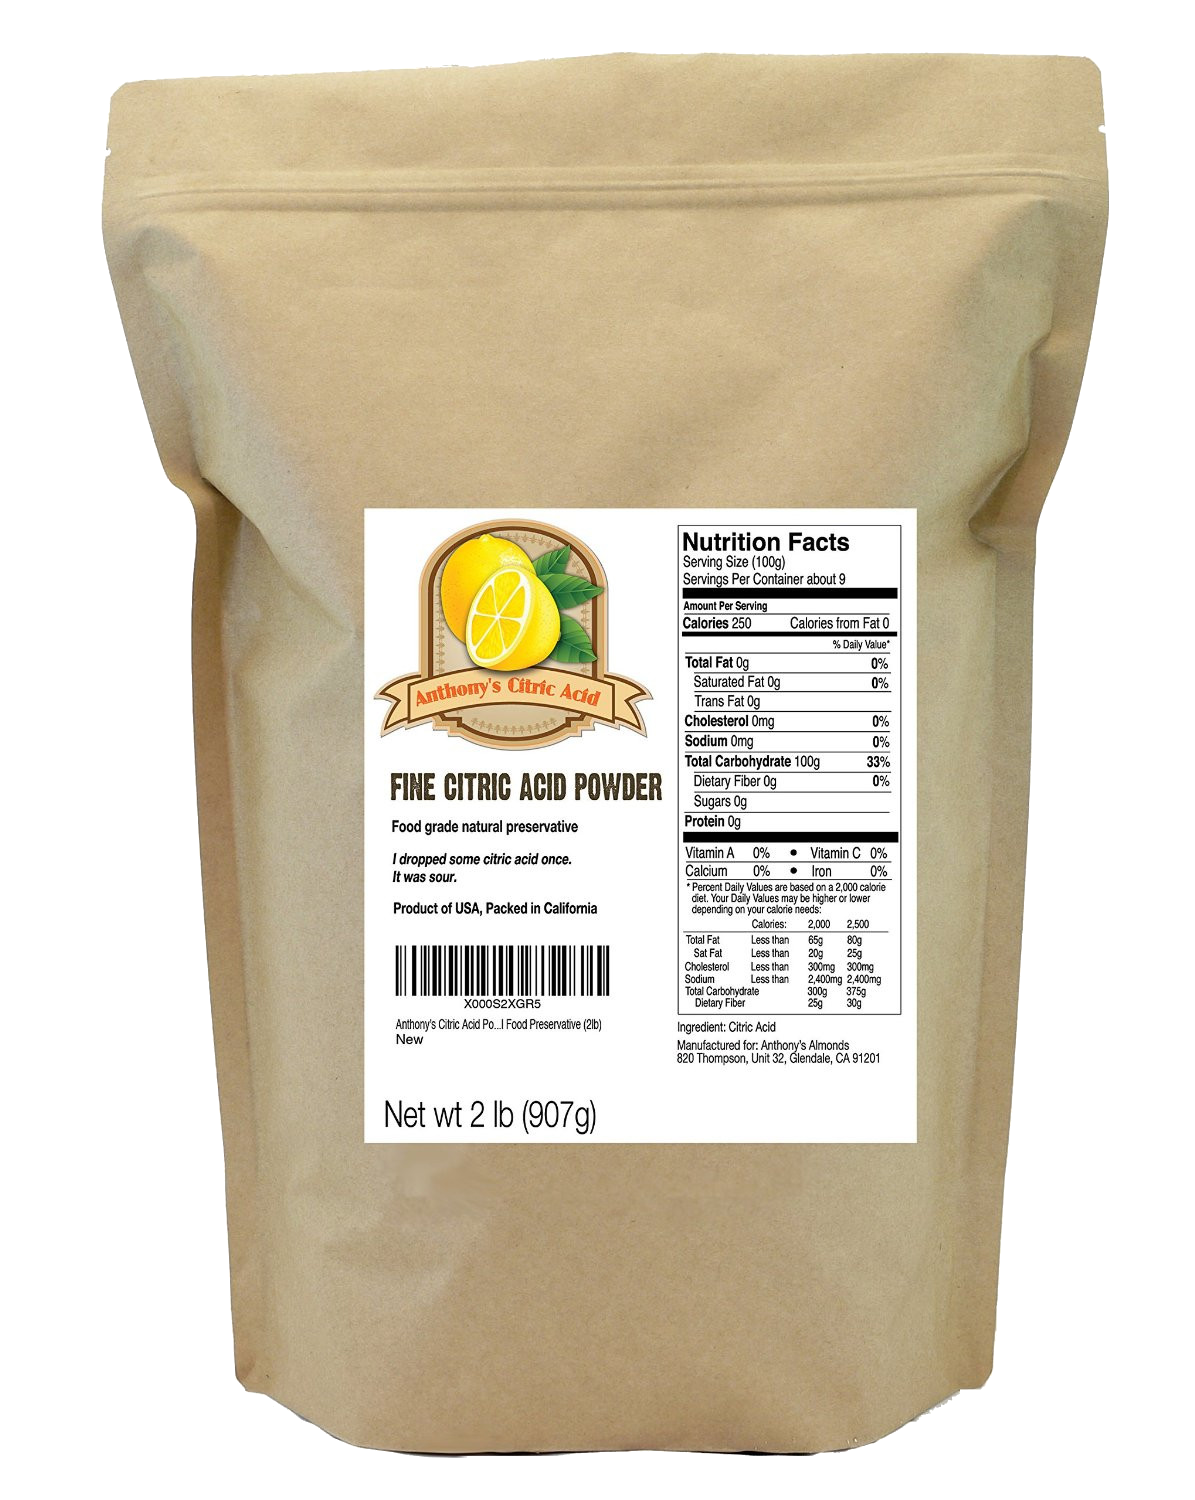 The Finest Powdered Form Of Citric Acid Available An Actual Powder Not Granular Like Other Suppliers Just Pure No Added Ings